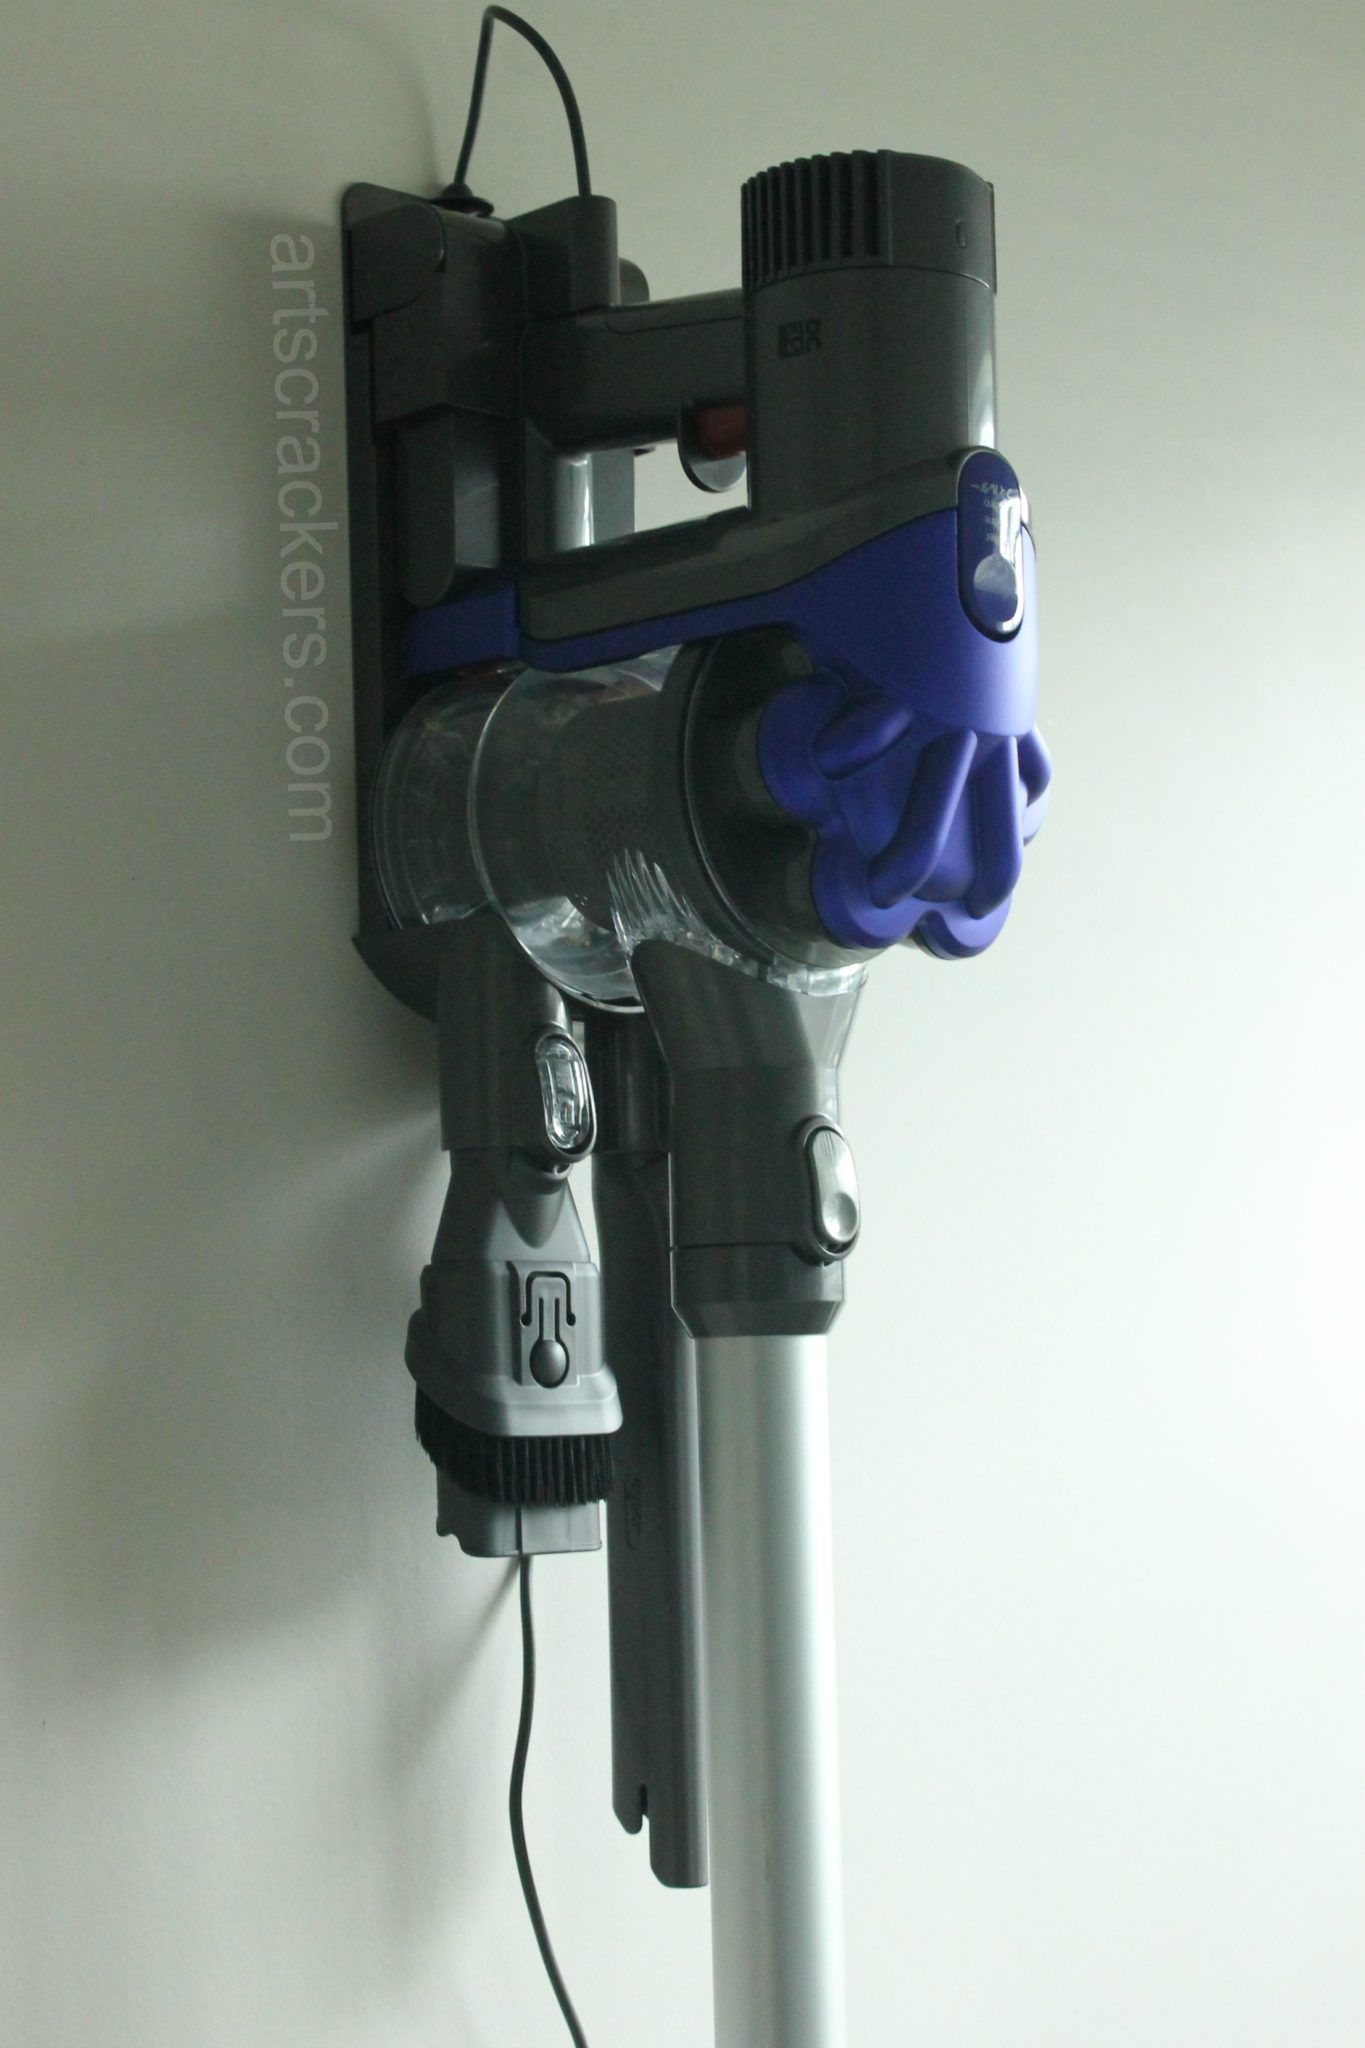 Dyson Dc35 Digital Slim Cordless Vacuum Review